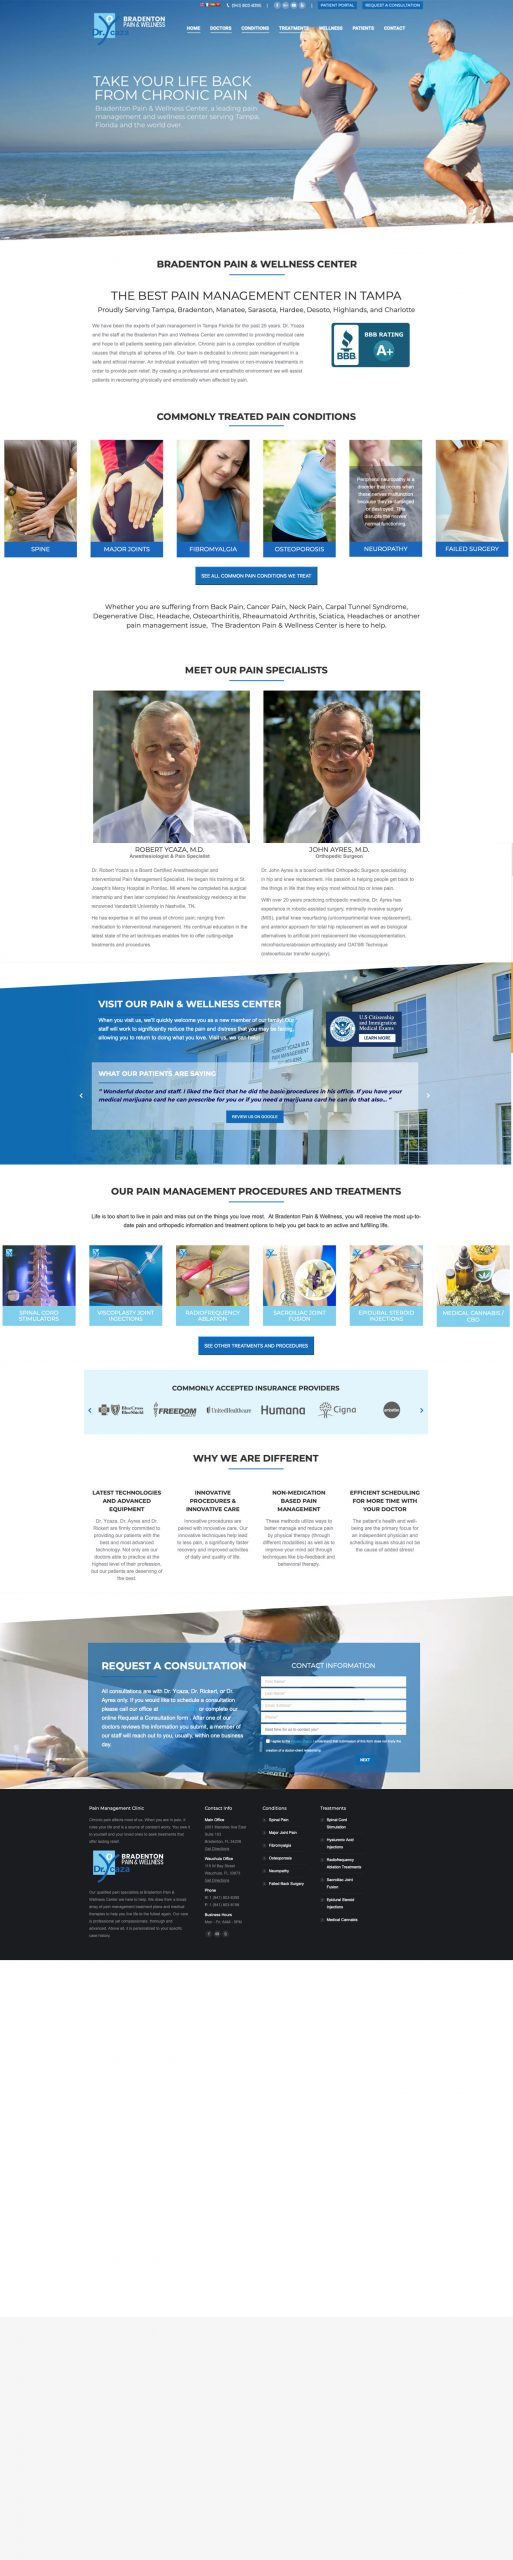 Website Design for Doctors & Physicians